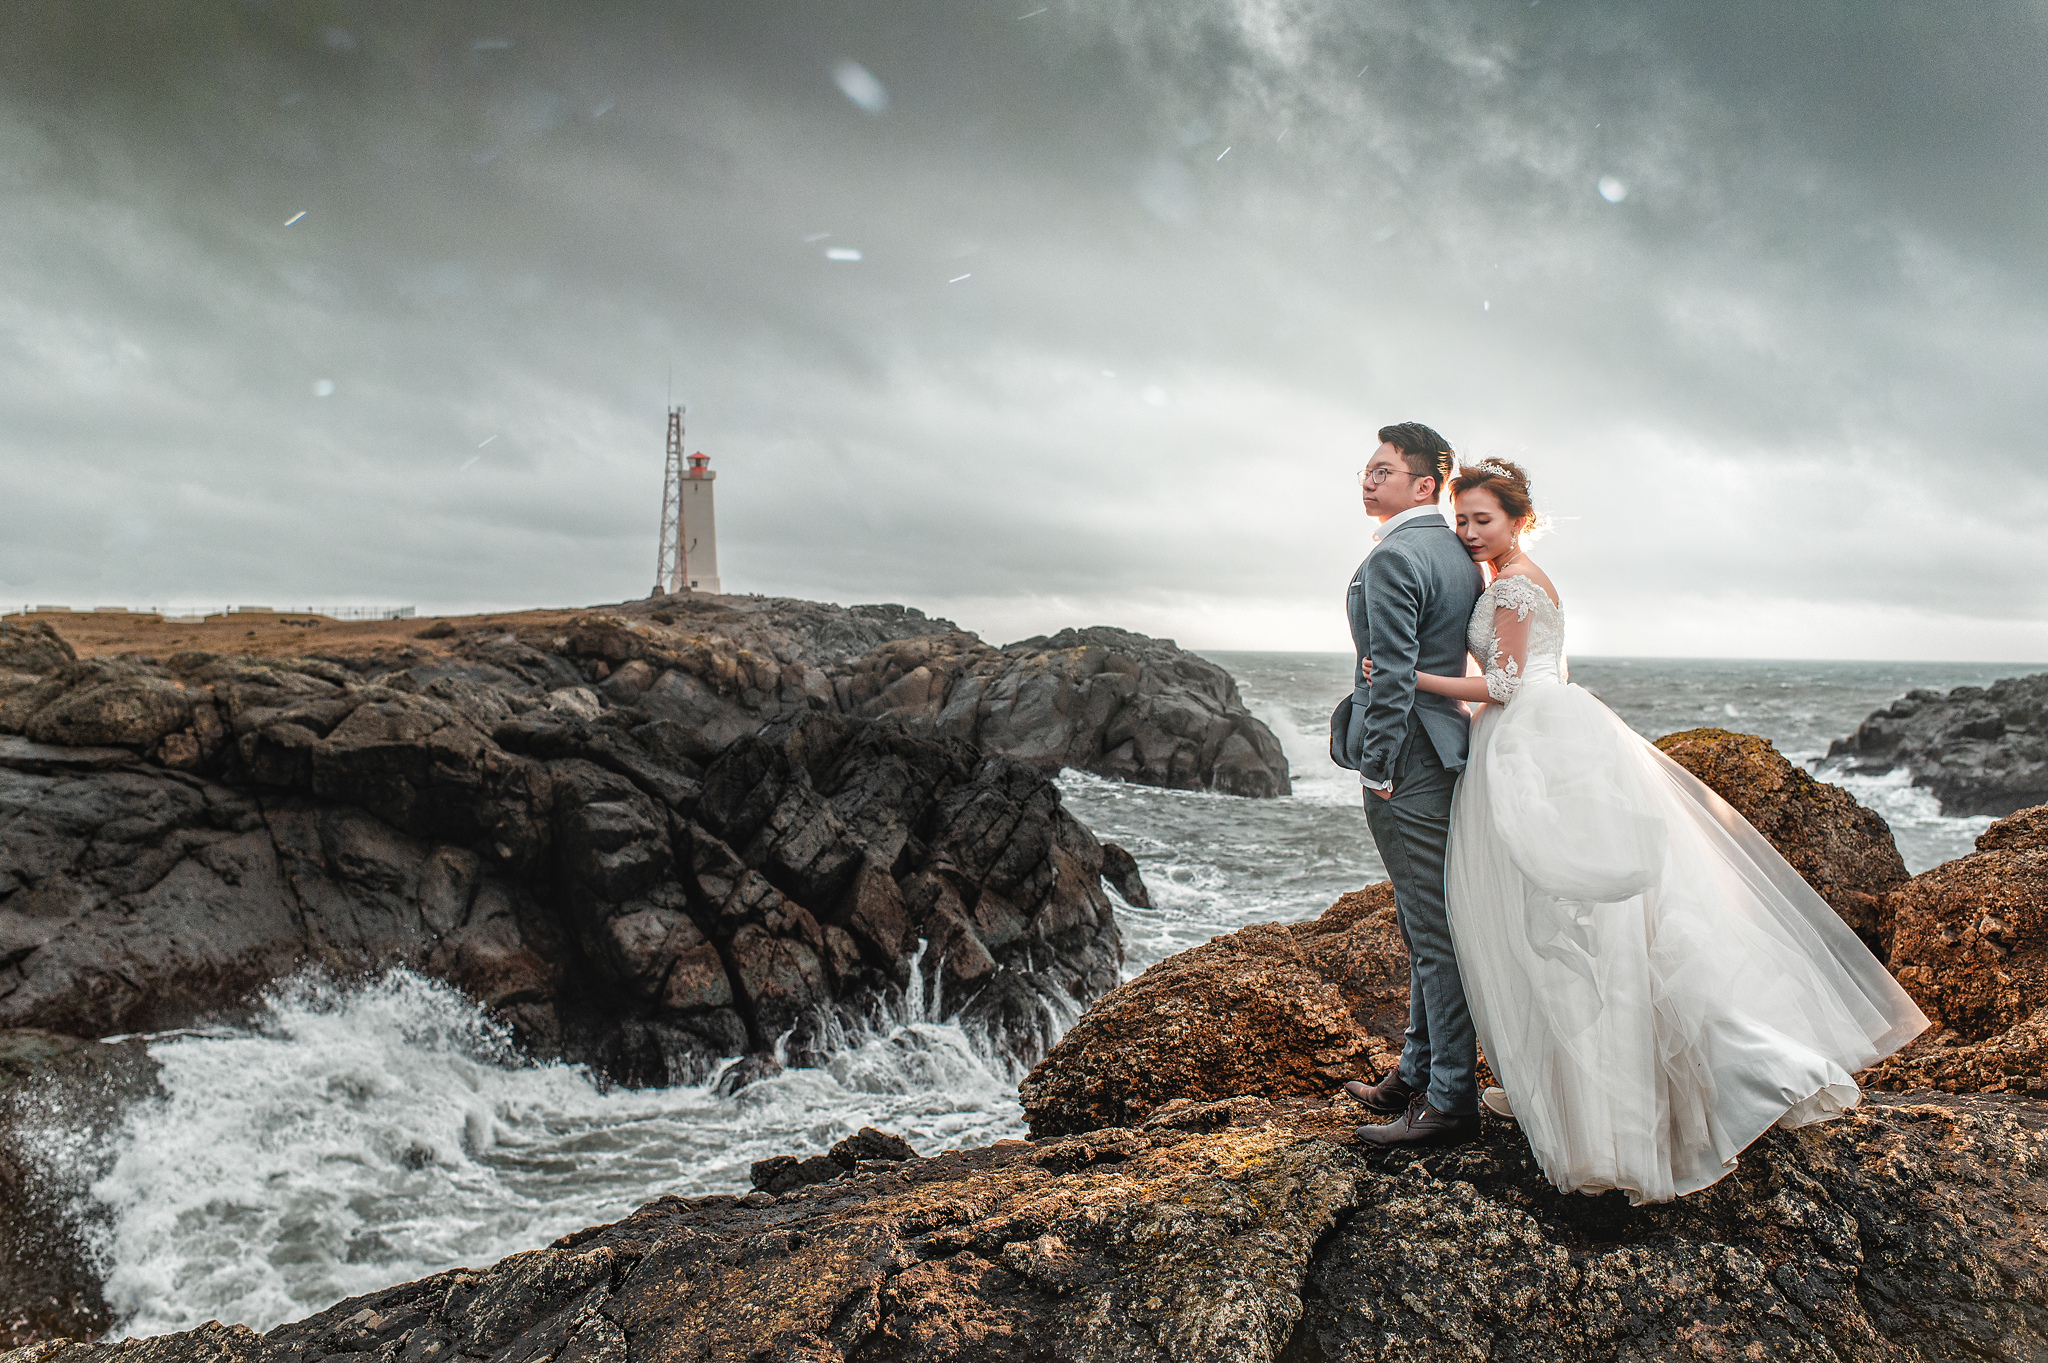 Couple portrait against crashing waves and lighthouse by Edwin Tan Photography